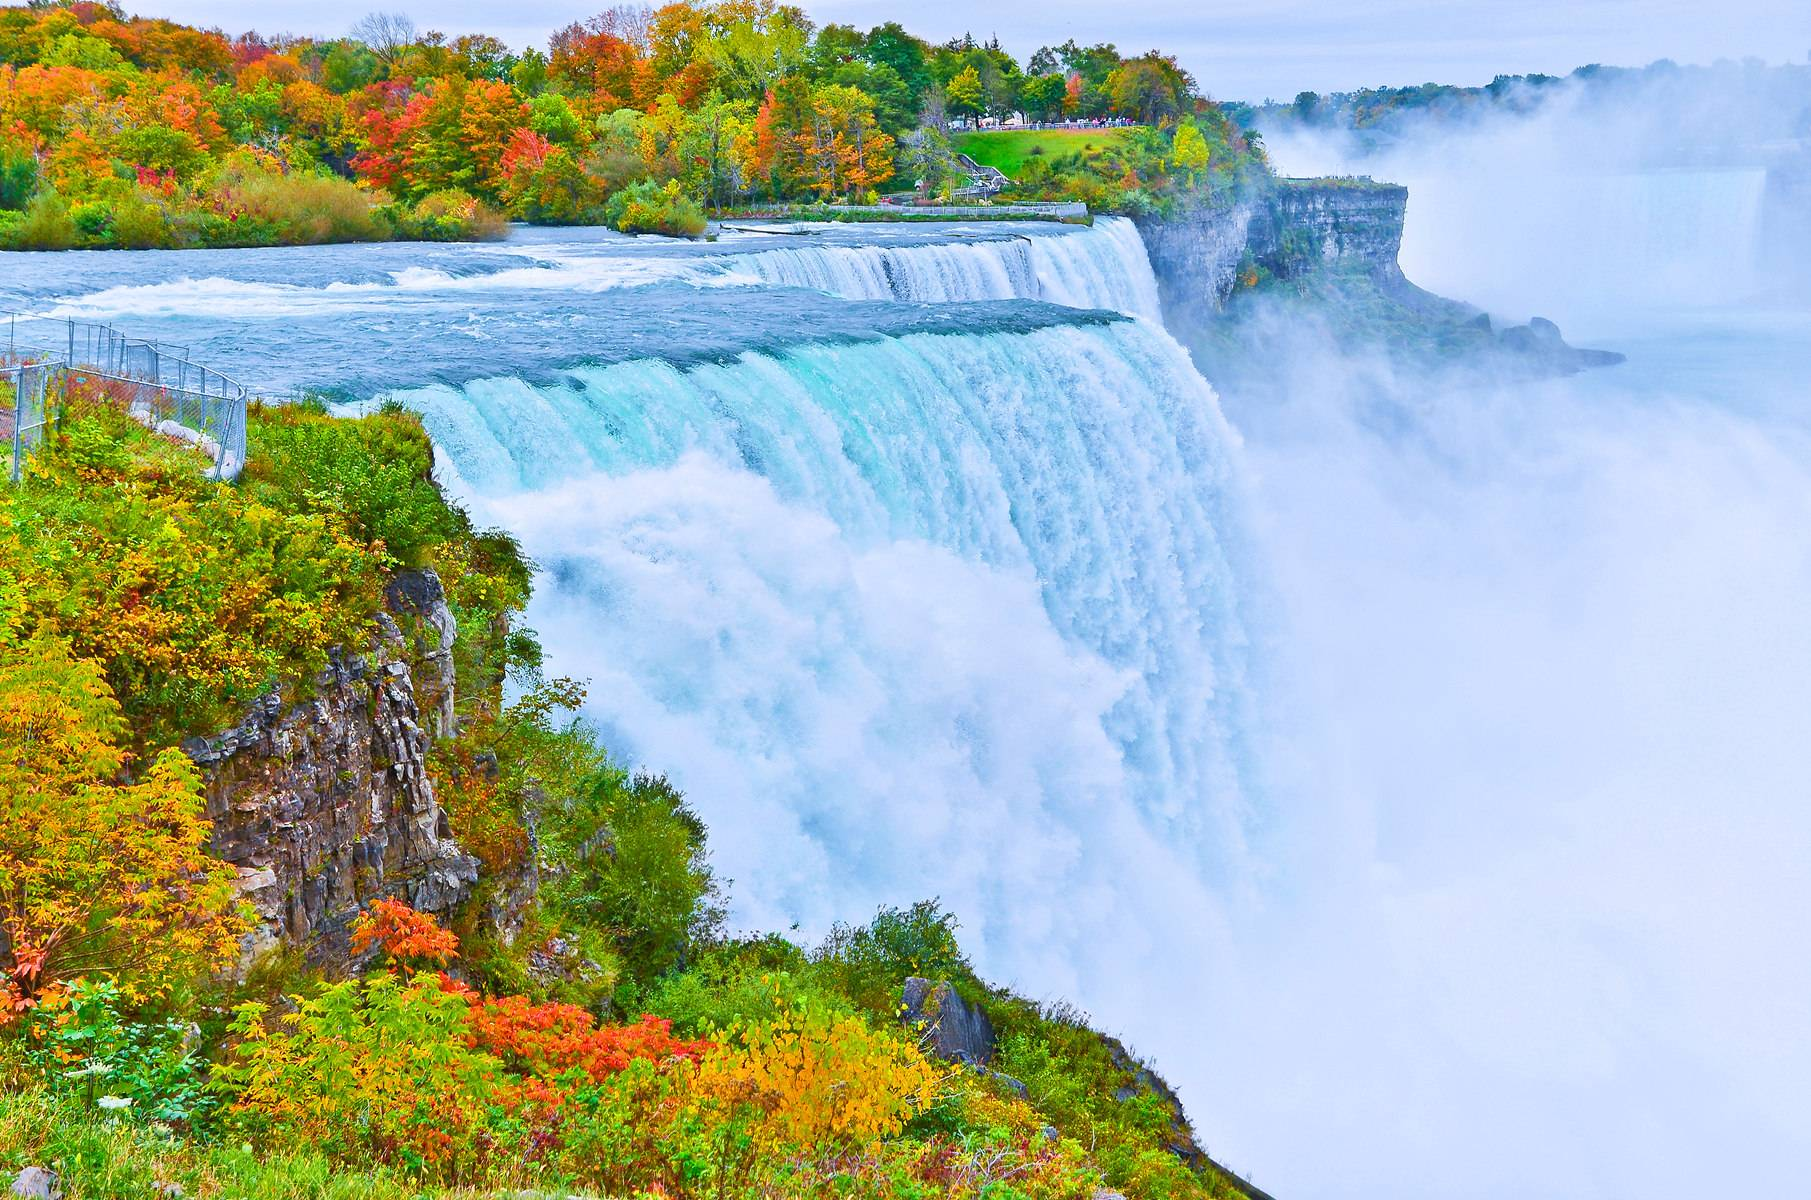 2-Day Niagara Falls In-depth Tour: Whirlpool State Park, Old Fort Niagara and Cave of the Winds